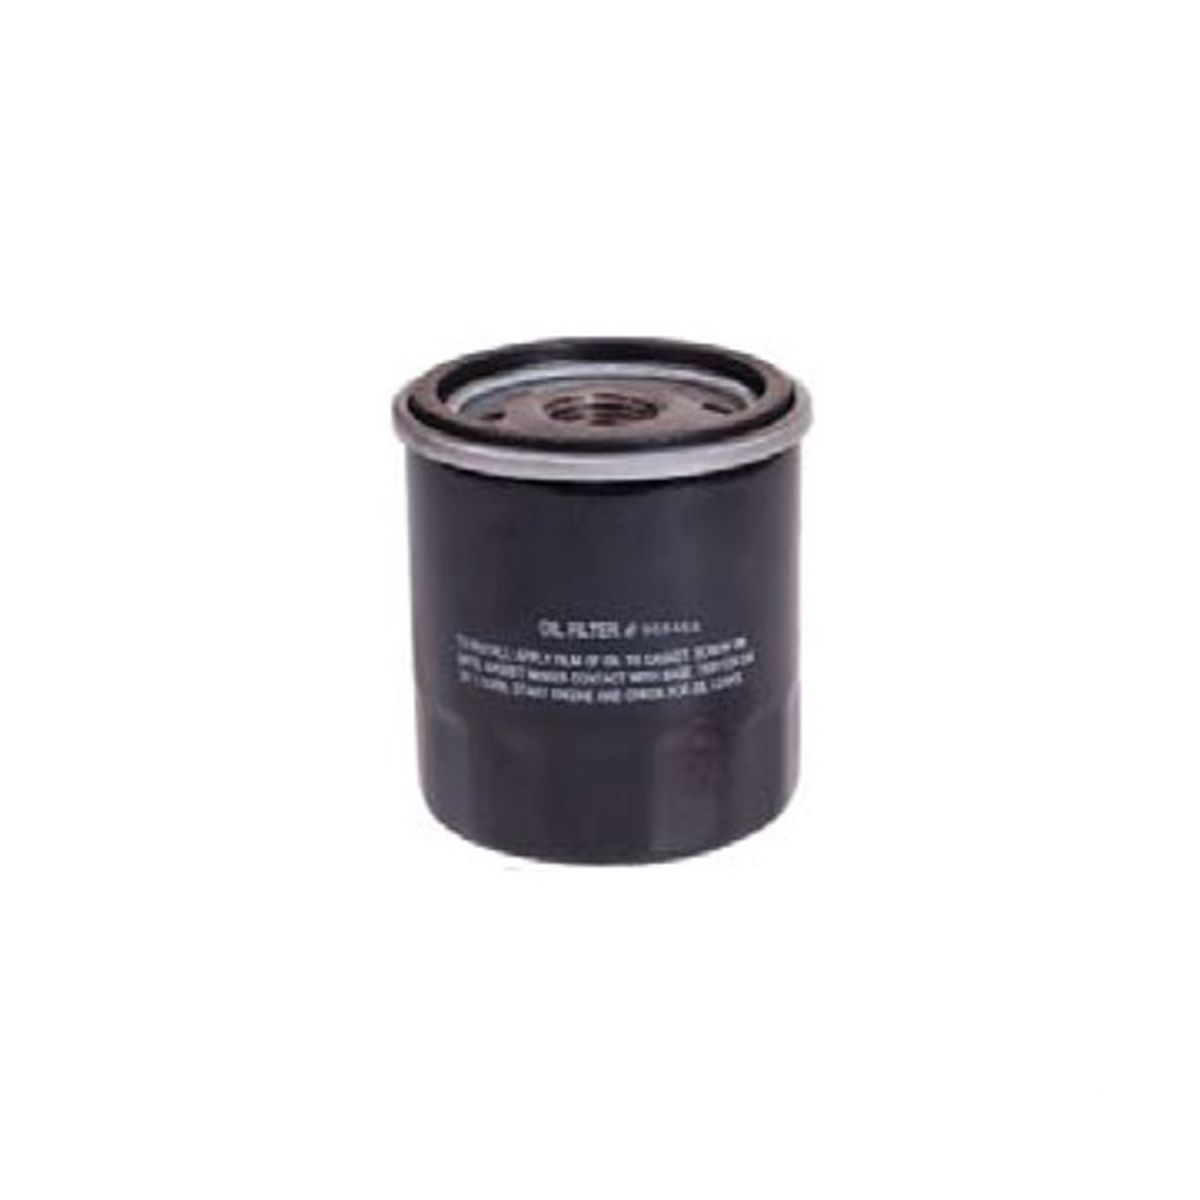 900464 Dixie Chopper Generac Oil Filter